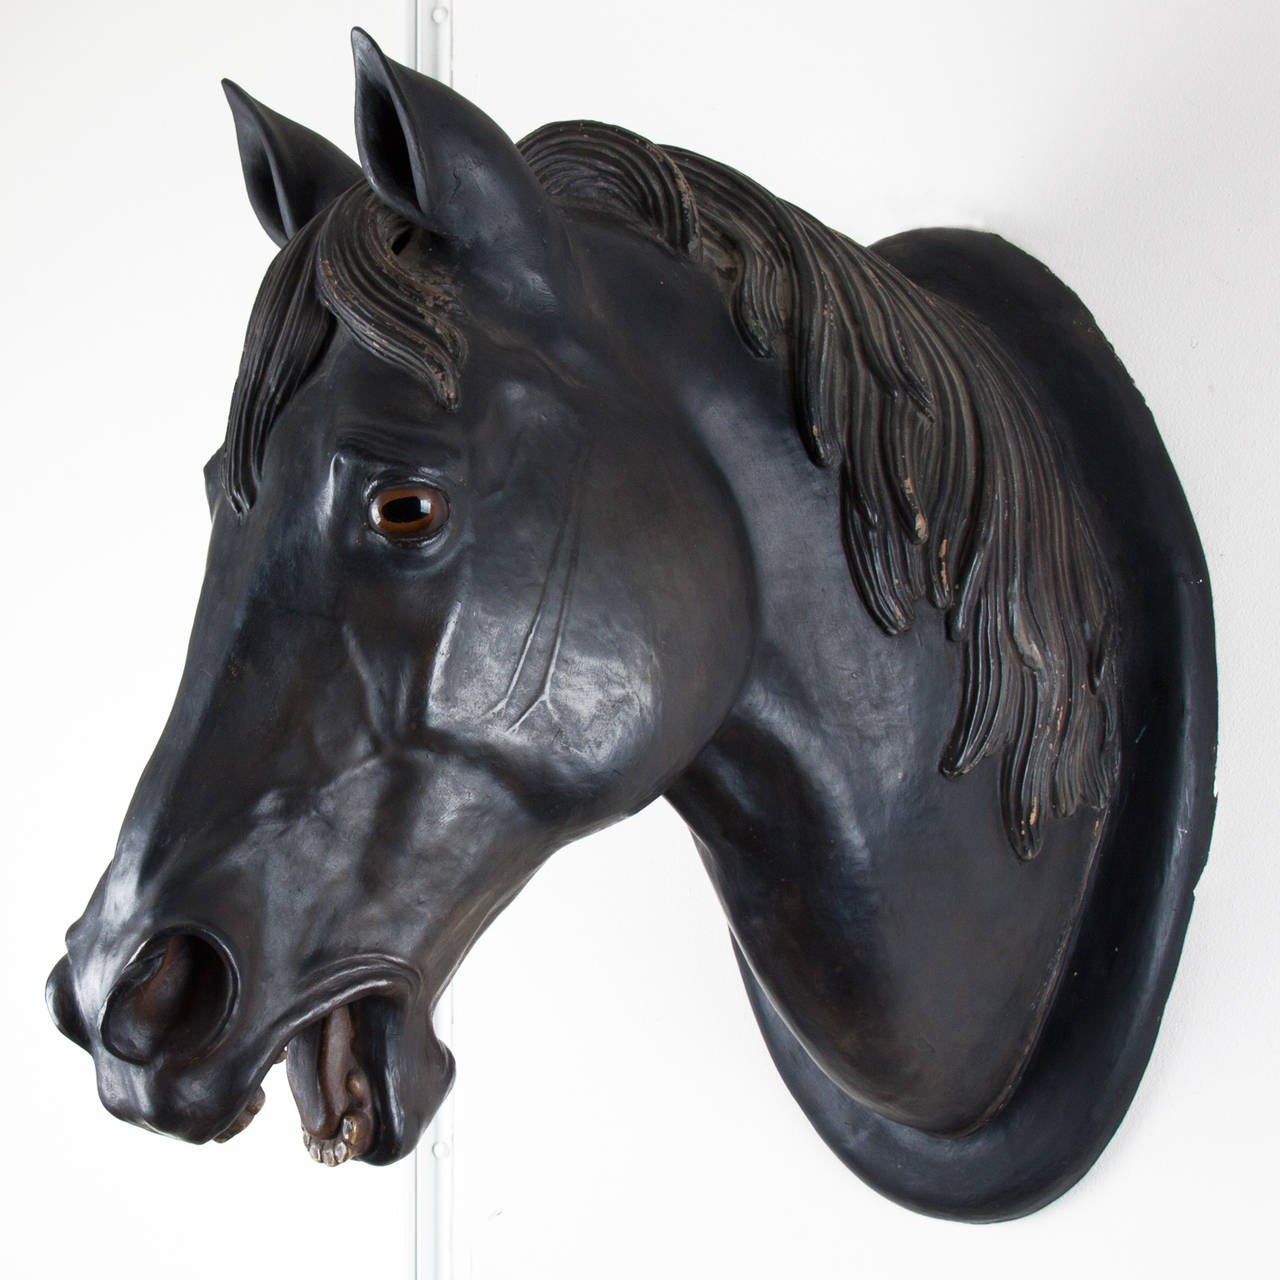 Very beautiful patin in the colours black and white.